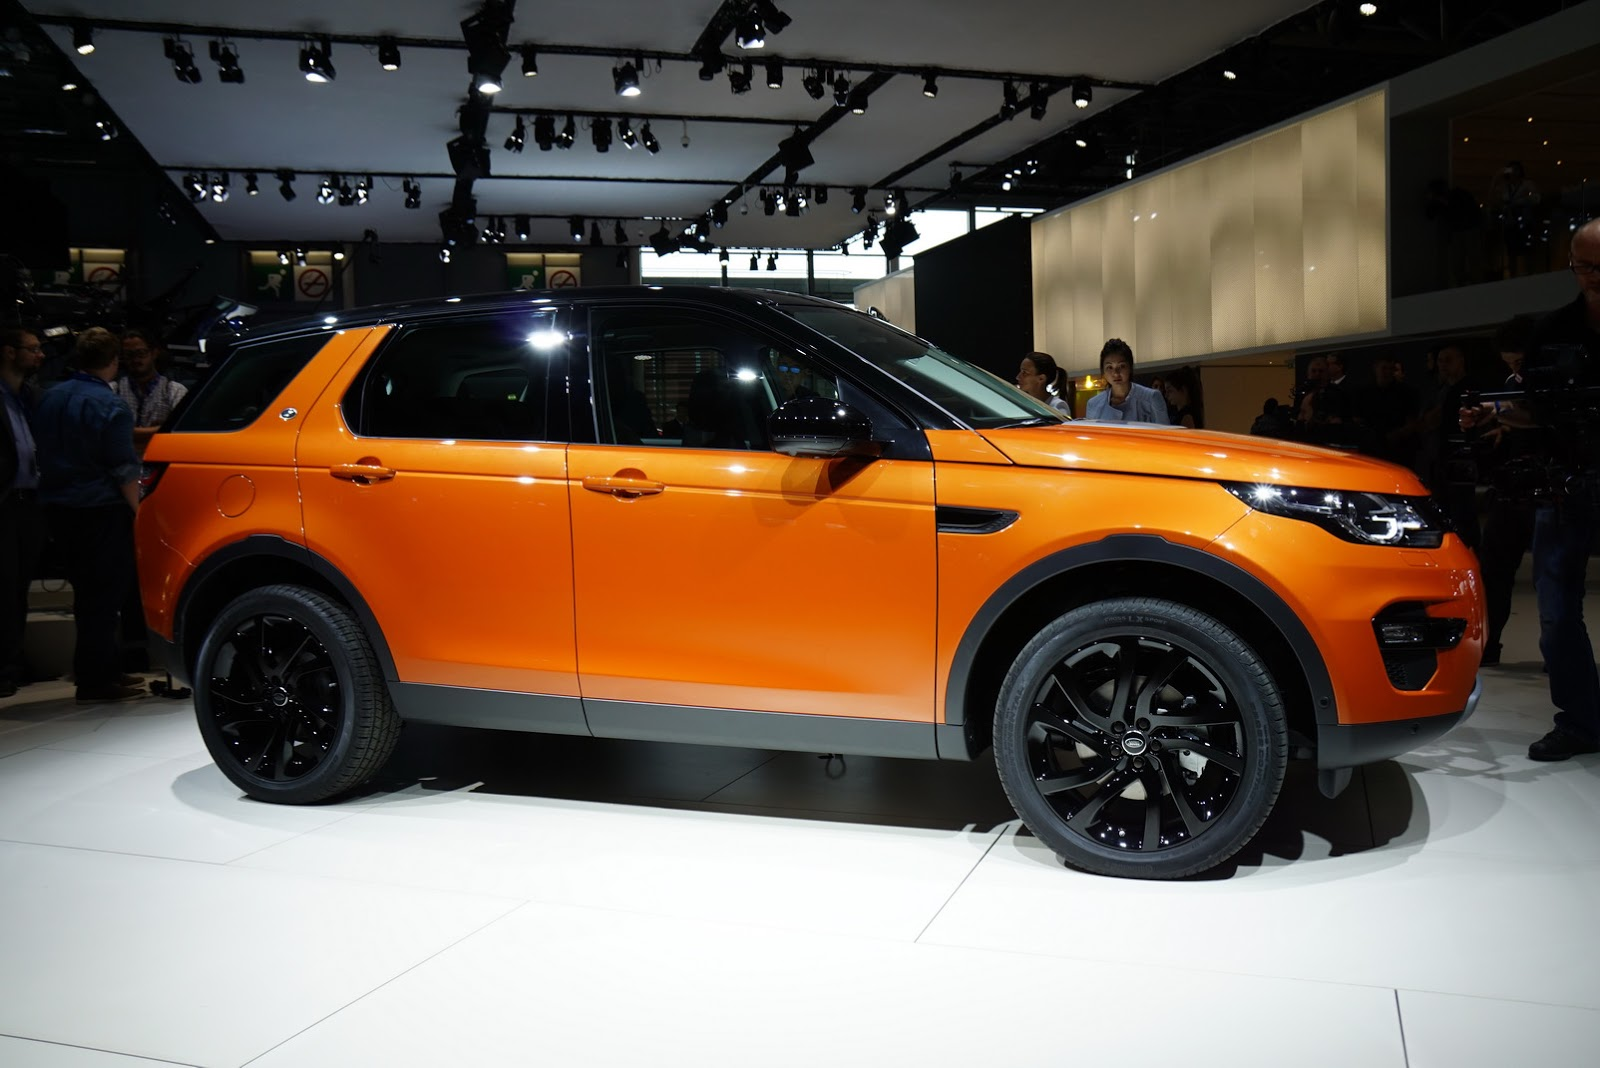 Discovery Sport In Orange Land Rover Discovery Sport